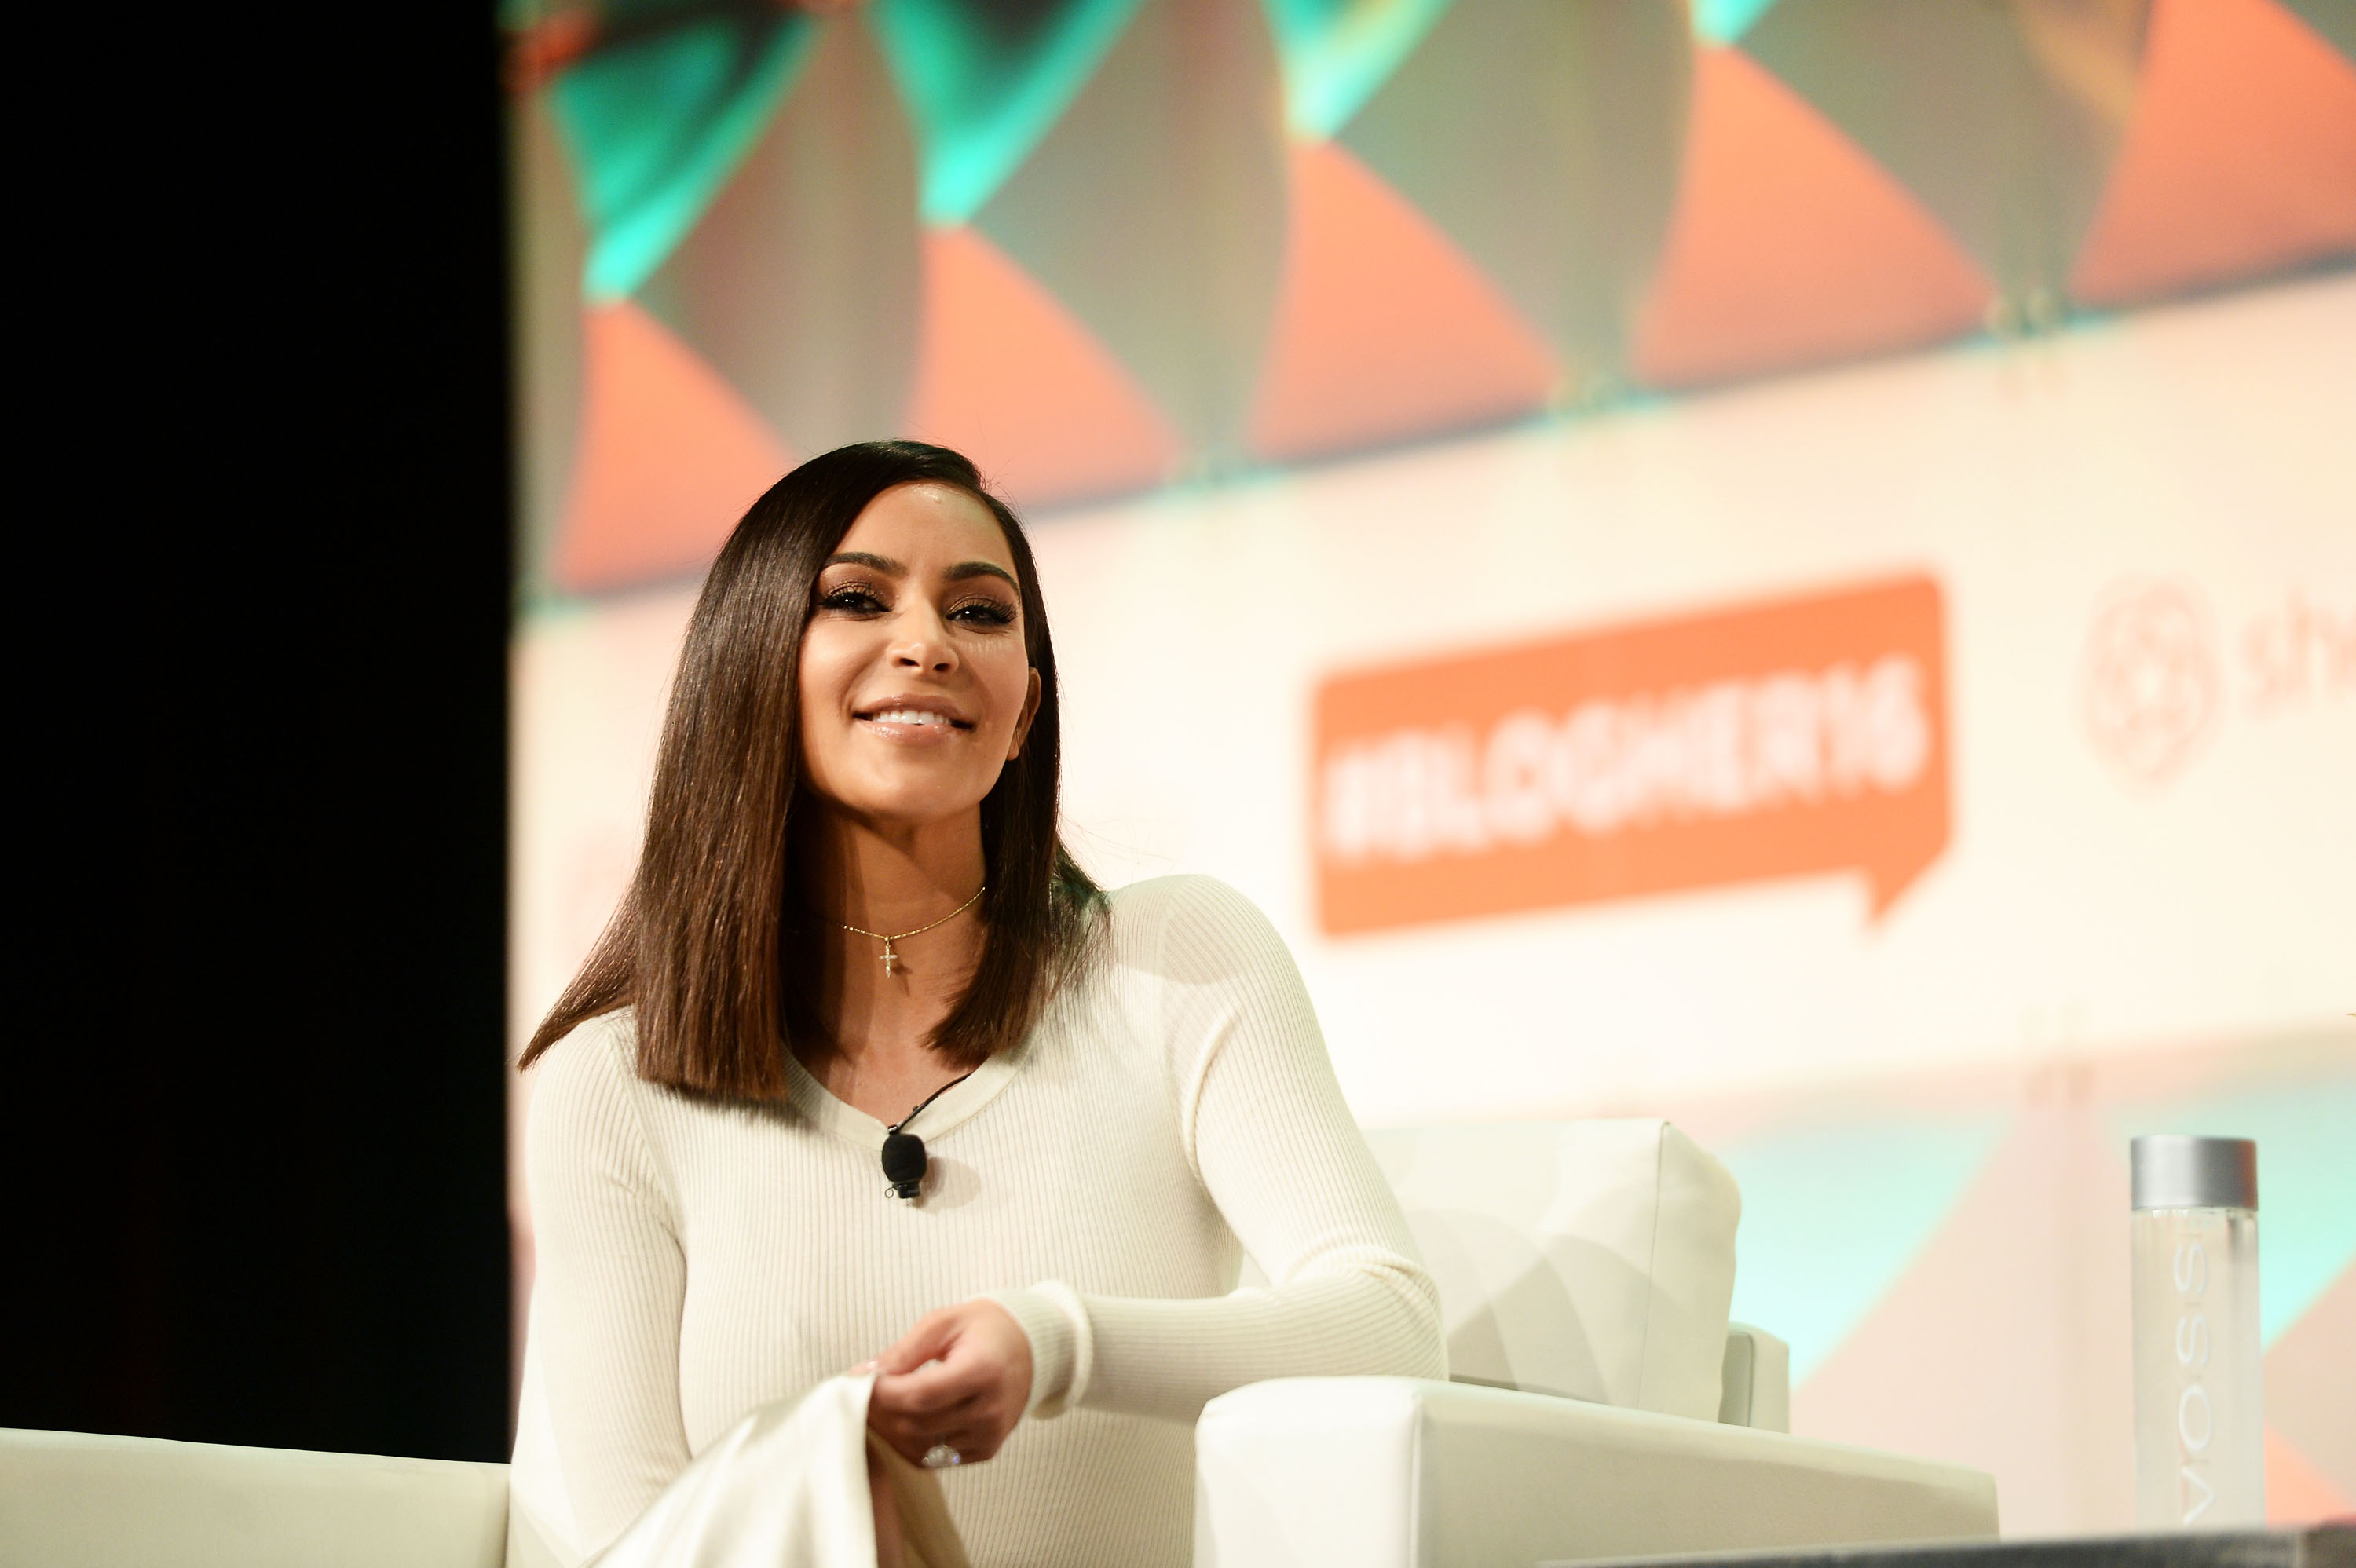 LOS ANGELES, CA - AUGUST 05: Kim Kardashian West speaks during the #BlogHer16 Experts Among Us conference at JW Marriott Los Angeles at JW Marriott Los Angeles at L.A. LIVE on August 5, 2016 in Los Angeles, California. (Photo by Matt Winkelmeyer/Getty Images)